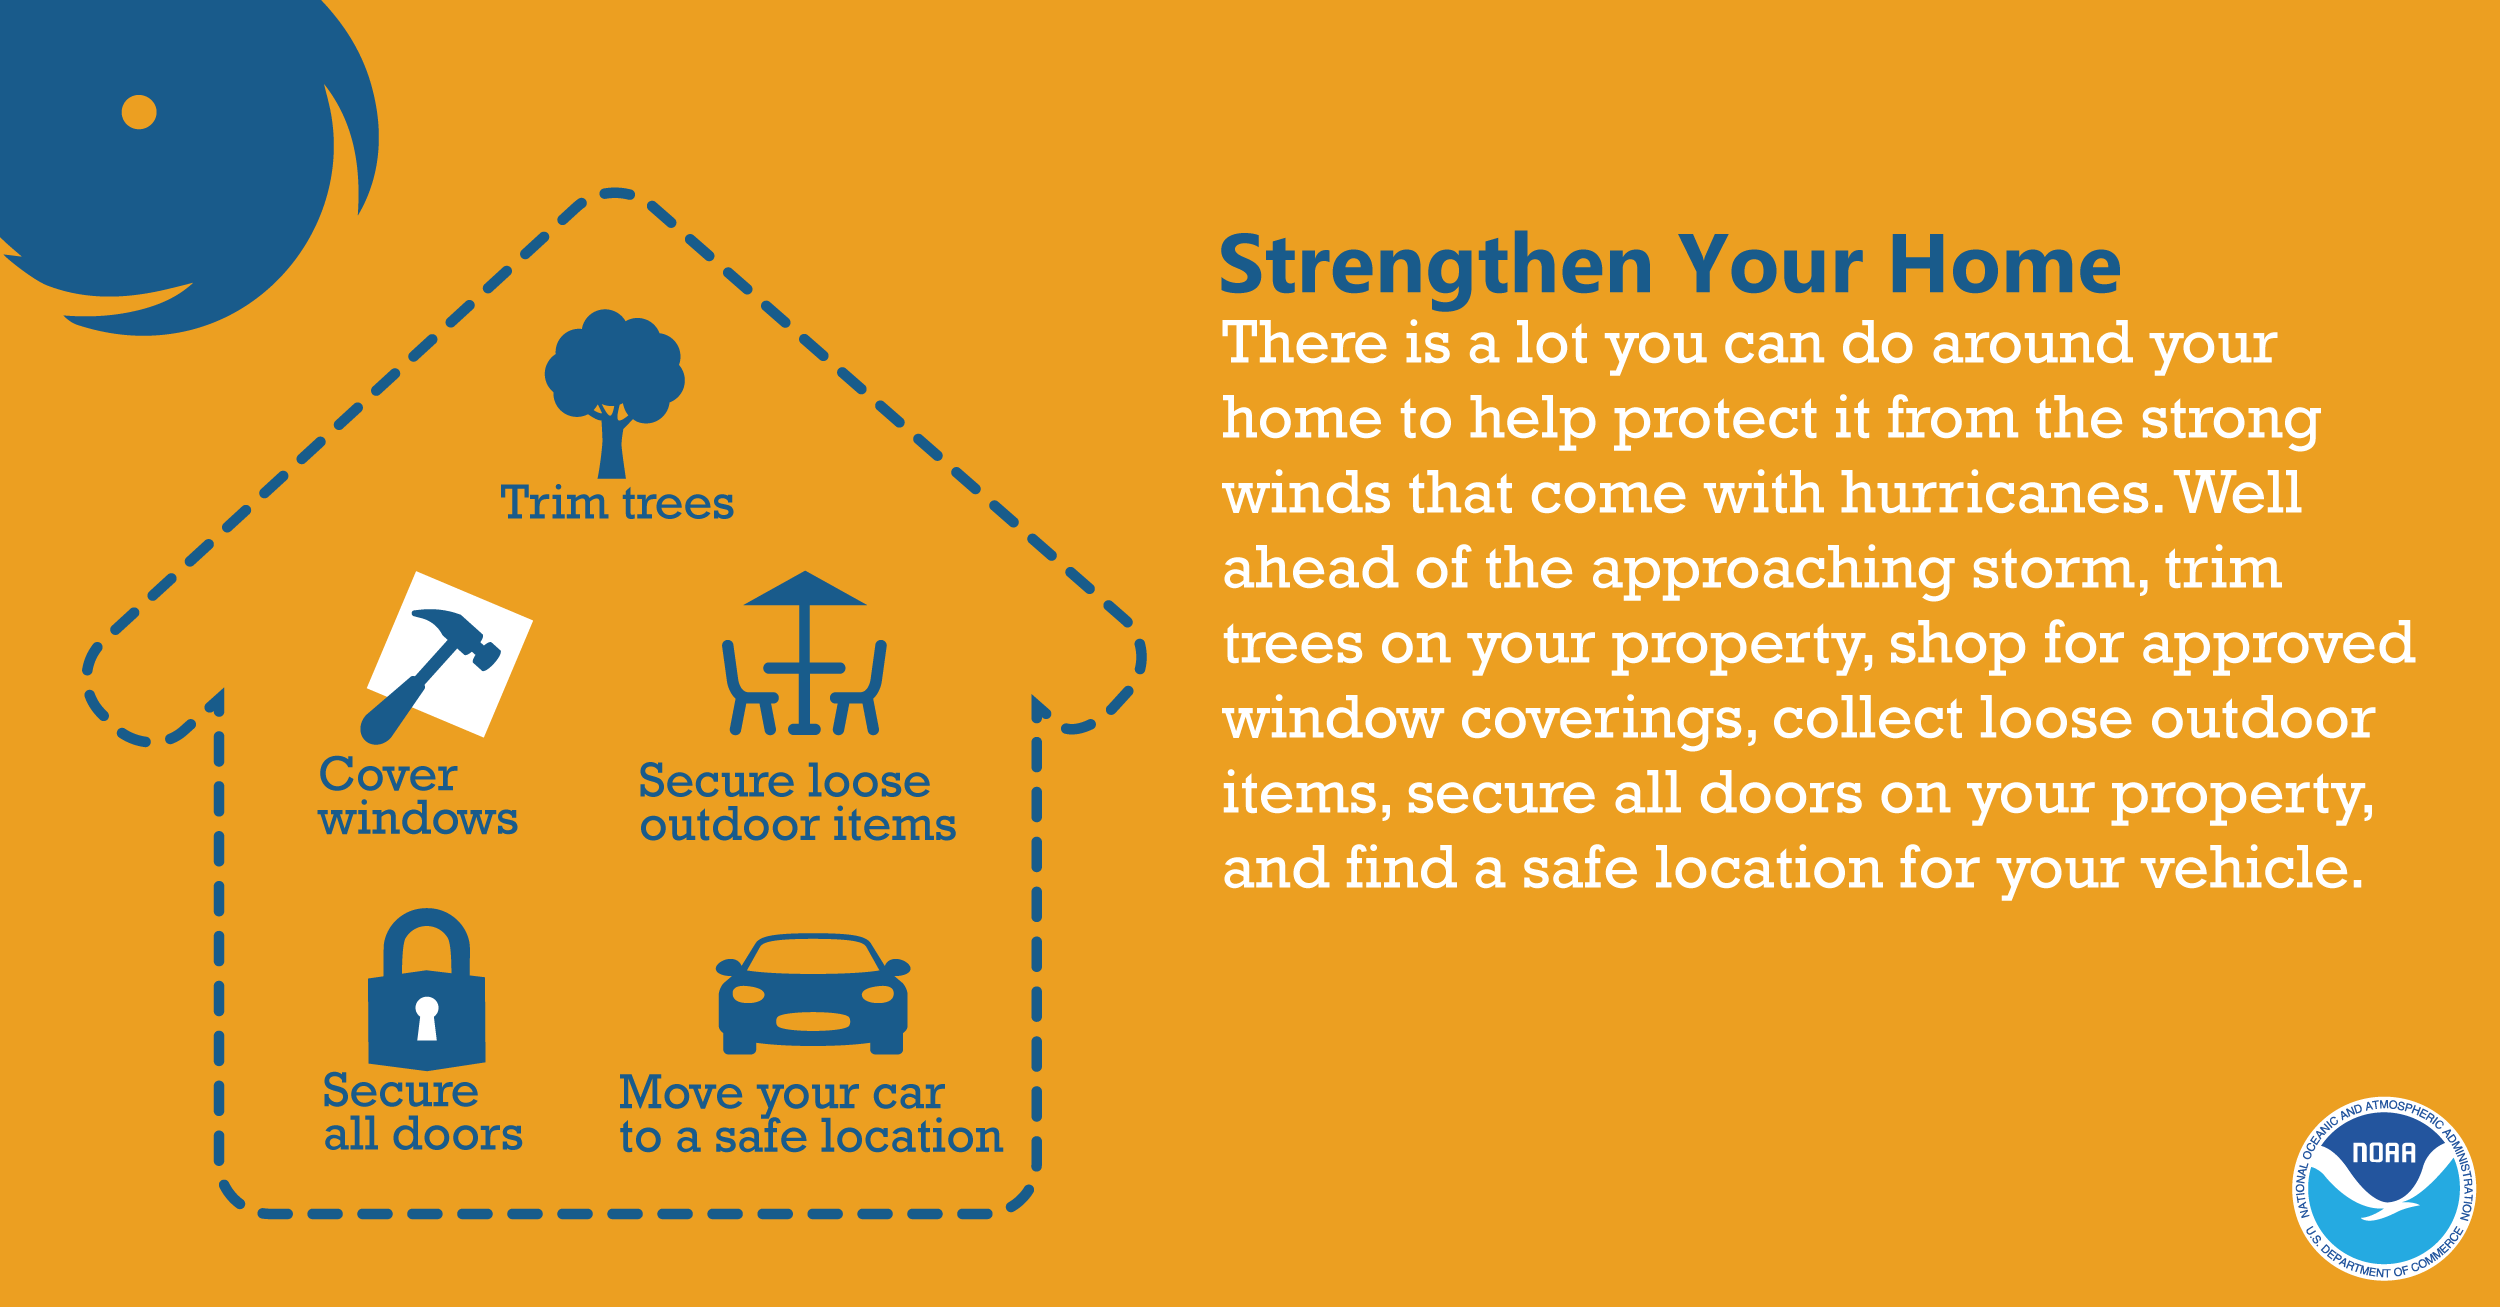 Strengthen Your Home: There is a lot you can do around your home to help protect it from the strong winds that come with hurricanes. Well ahead of the approaching storm, trim trees on your property, shop for approved window coverings, collect loose outdoor items, secure all doors on your property, and find a safe location for your vehicle.